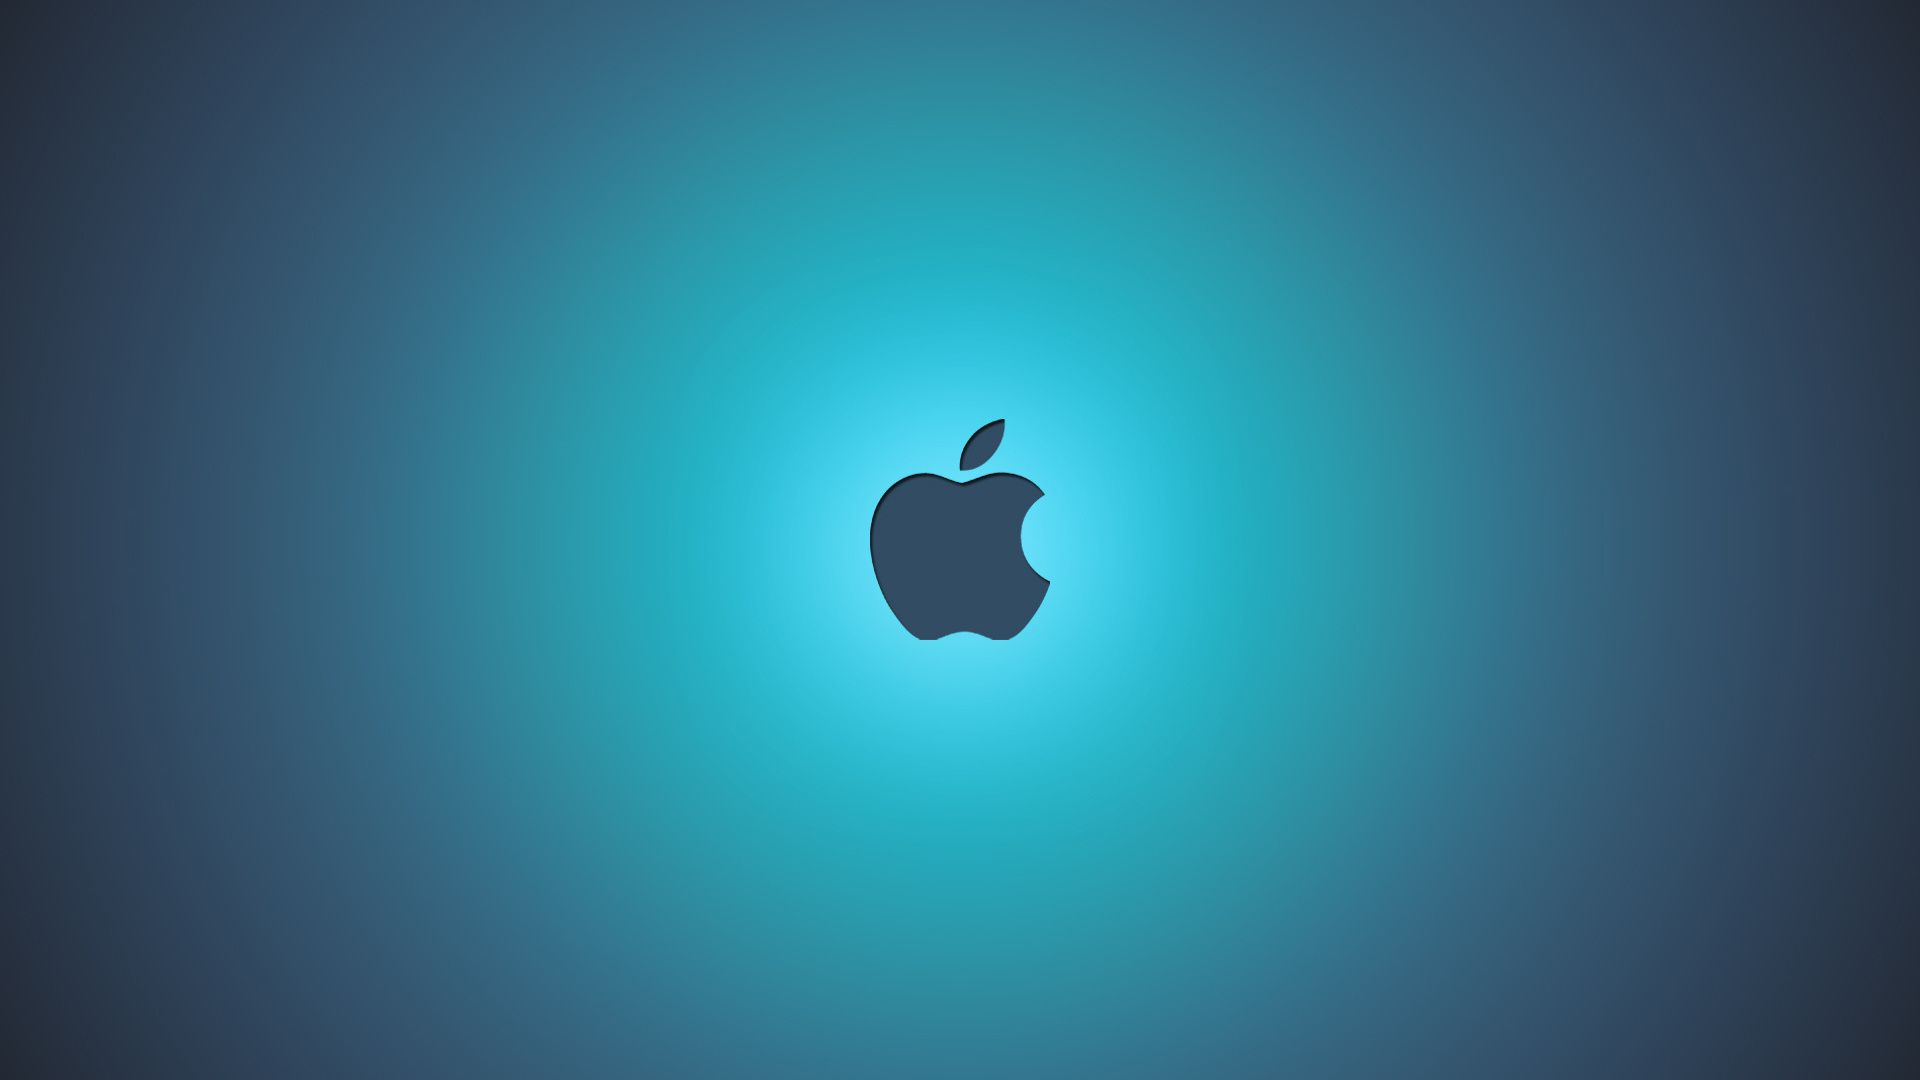 Apple Blue Background Wallpaper Desktop #6250 Wallpaper